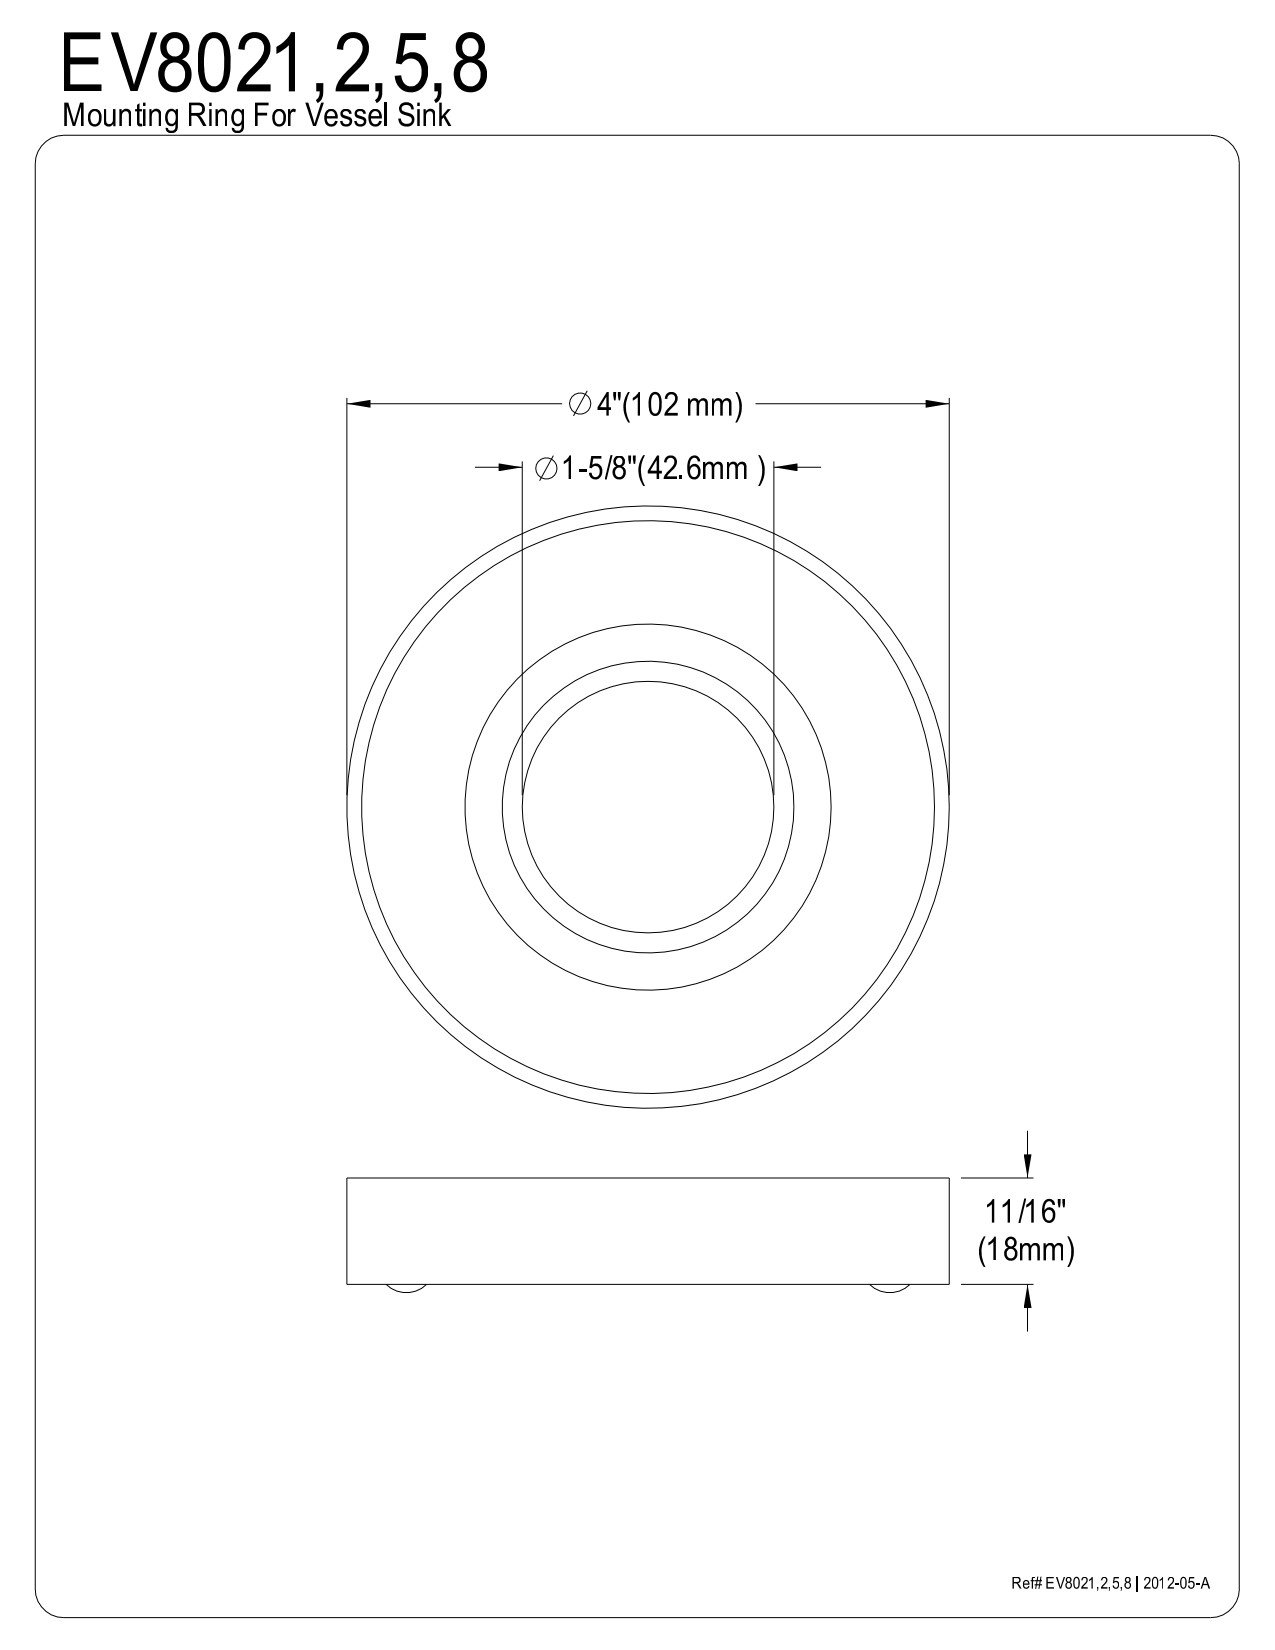 Kingston Brass EV8025 Faucetier Mounting Ring for Vessel Sink, Oil Rubbed Bronze